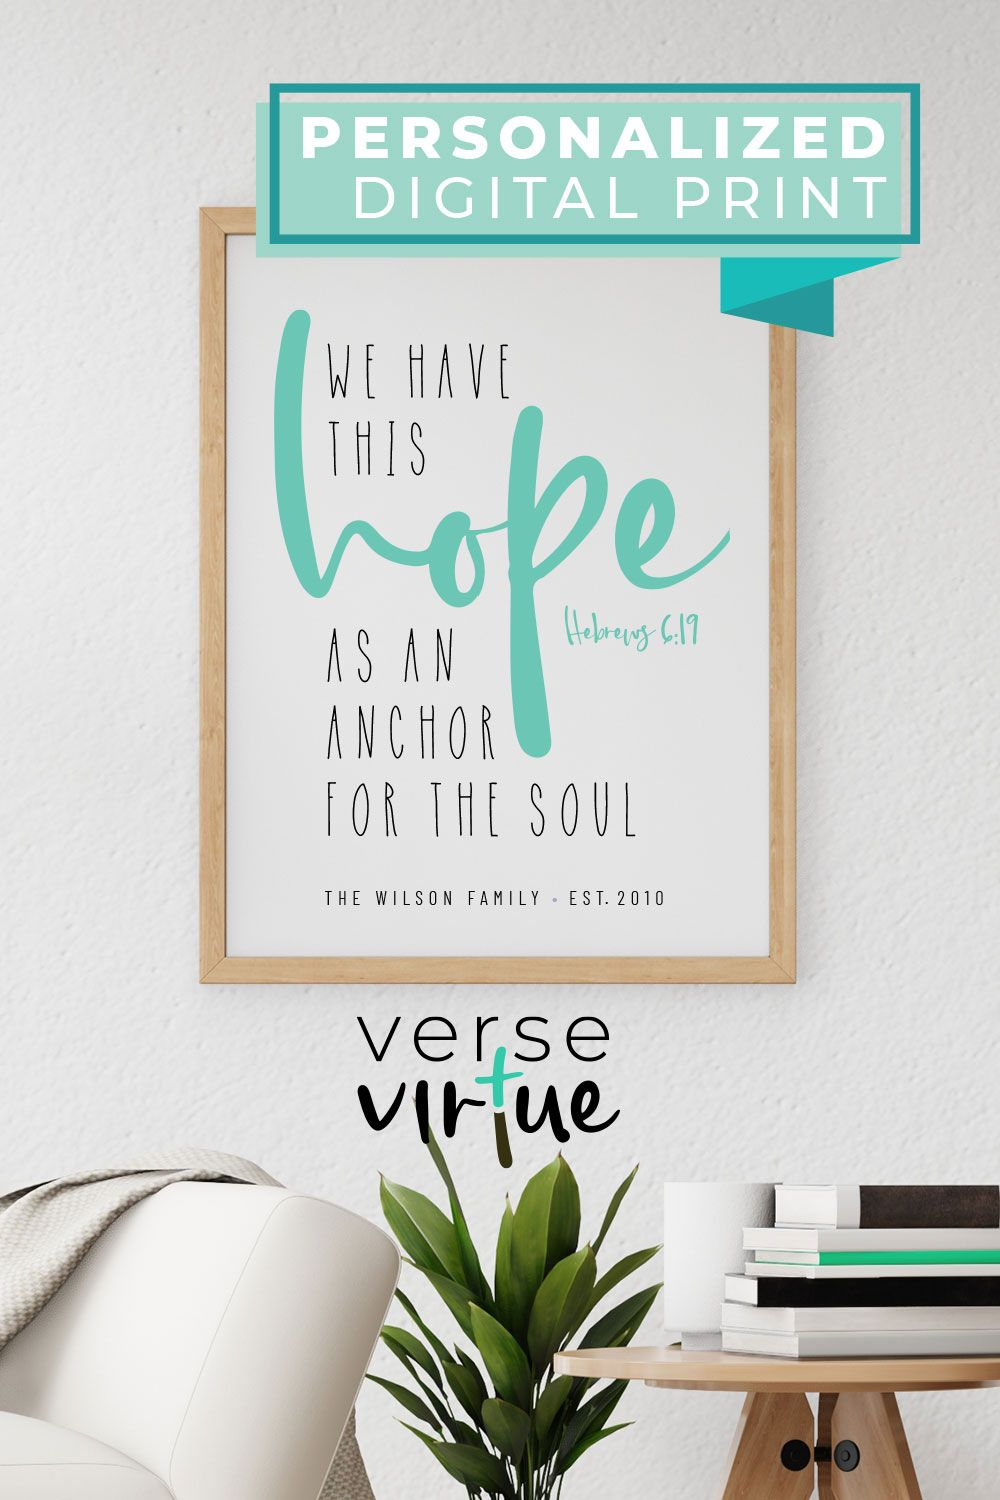 Hope Bible Verse Wall Art Hebrews 6 19 Personalized Scripture Print Multiple Colors And Sizes Available Edit Download Instantly In 2020 Bible Verse Wall Art Scripture Print Personalized Wall Art